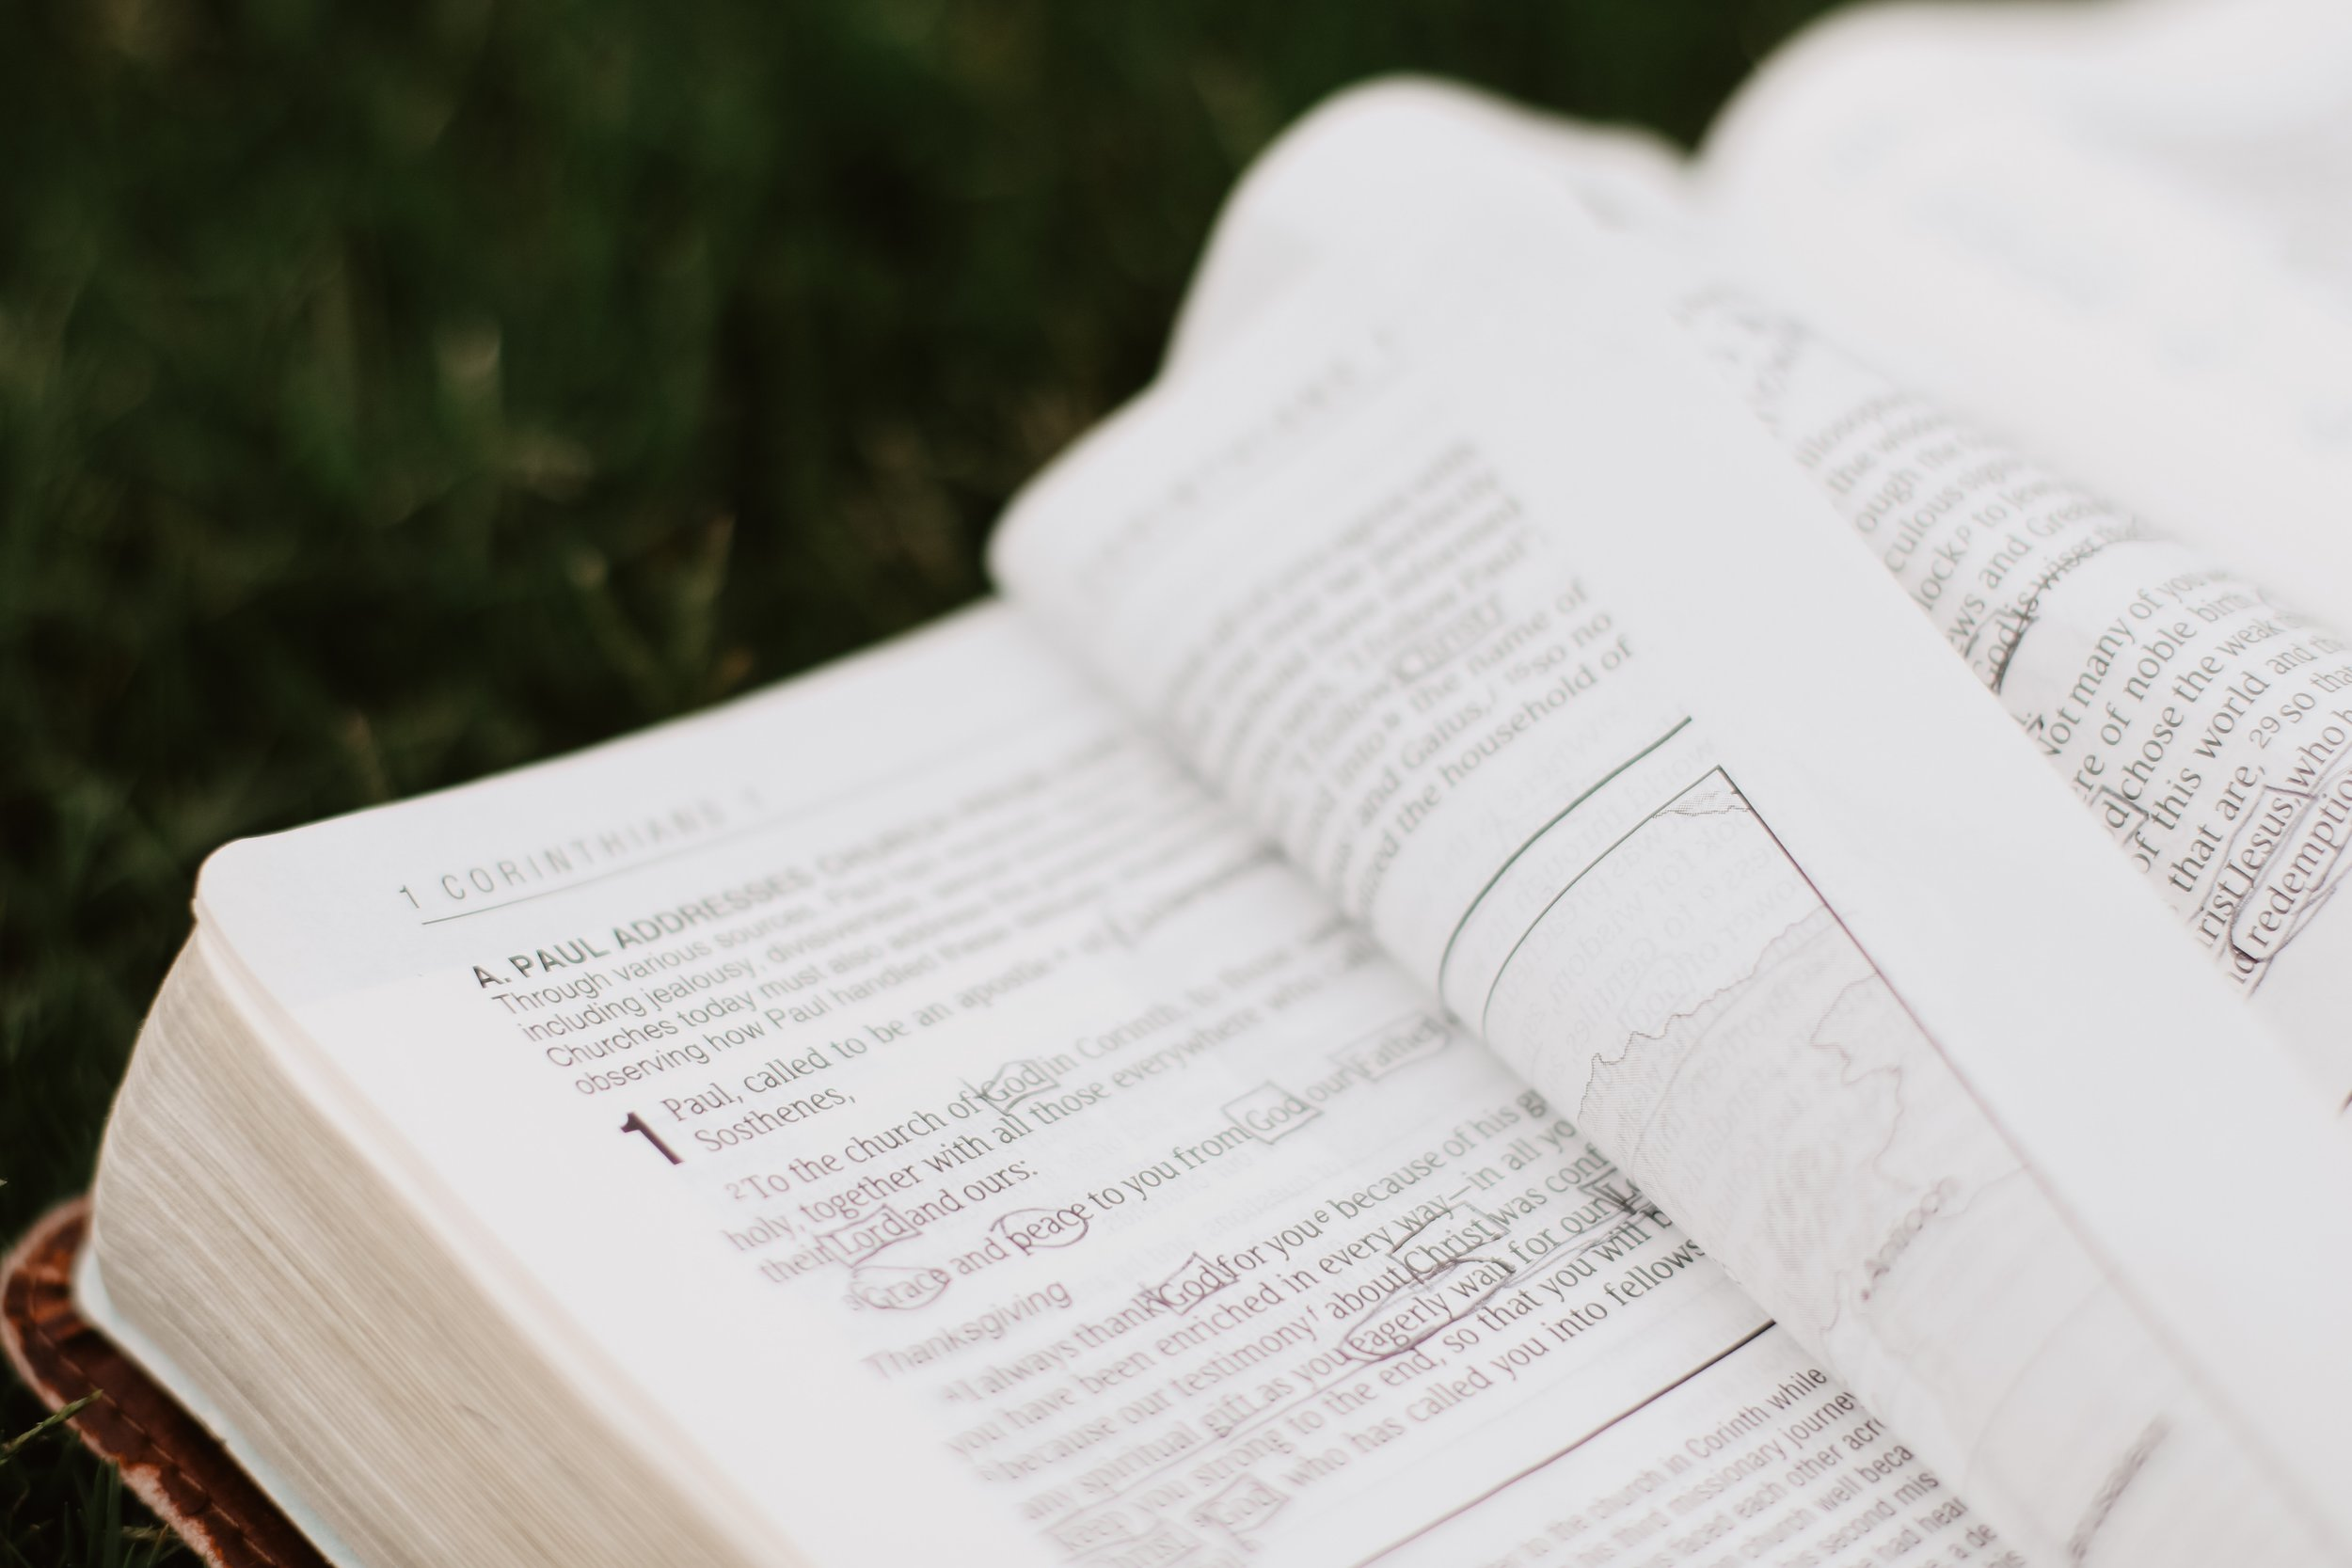 Why our Declining Biblical Literacy Matters       The Conversation      16 April, 2018  About: Dr Meredith Lake, 2017 ADM Senior Research Fellow Author: Dr Meredith Lake